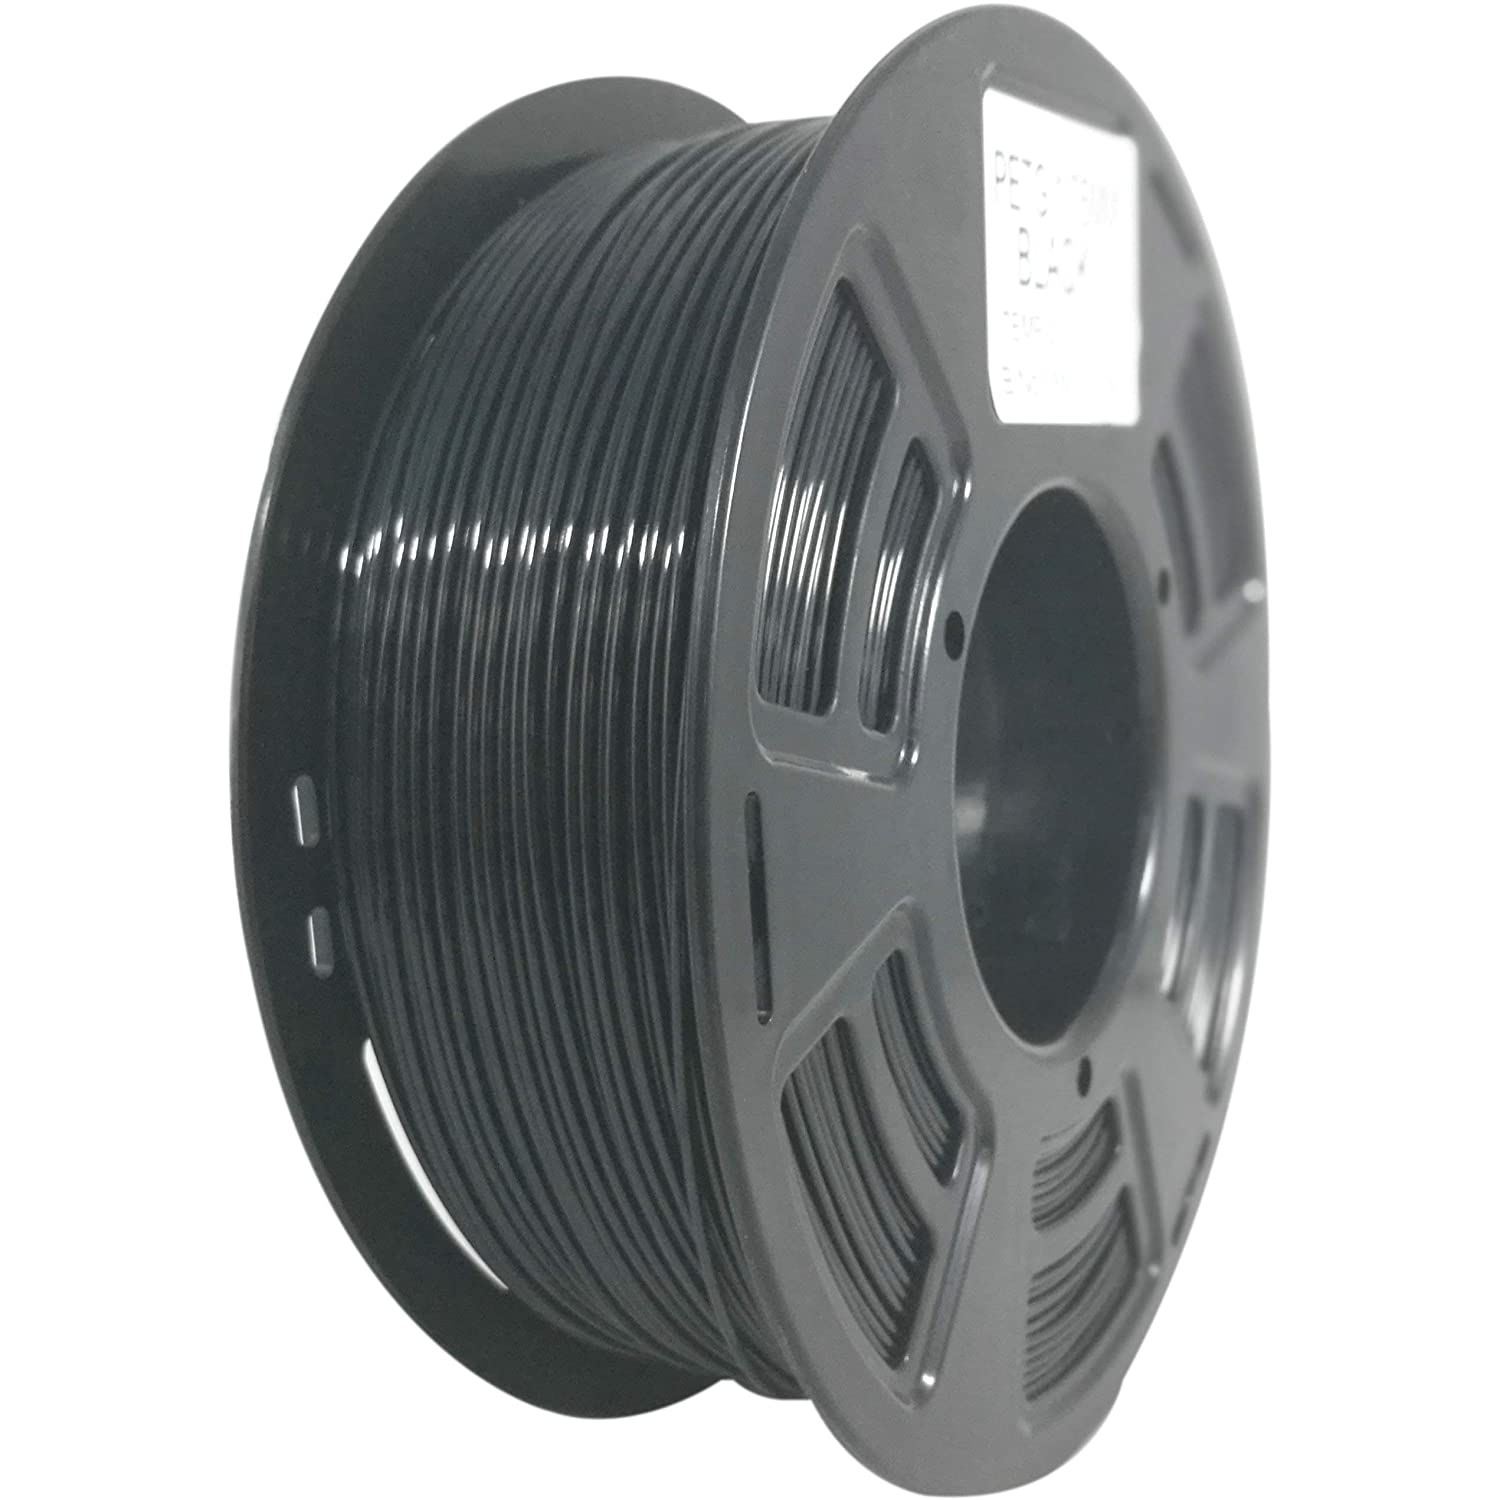 3d Printer Filament 1.75mm Petg 1kg 2.2lb Spool White Color 3d Printing Material Dependable Performance 3d Printer Consumables Computers/tablets & Networking